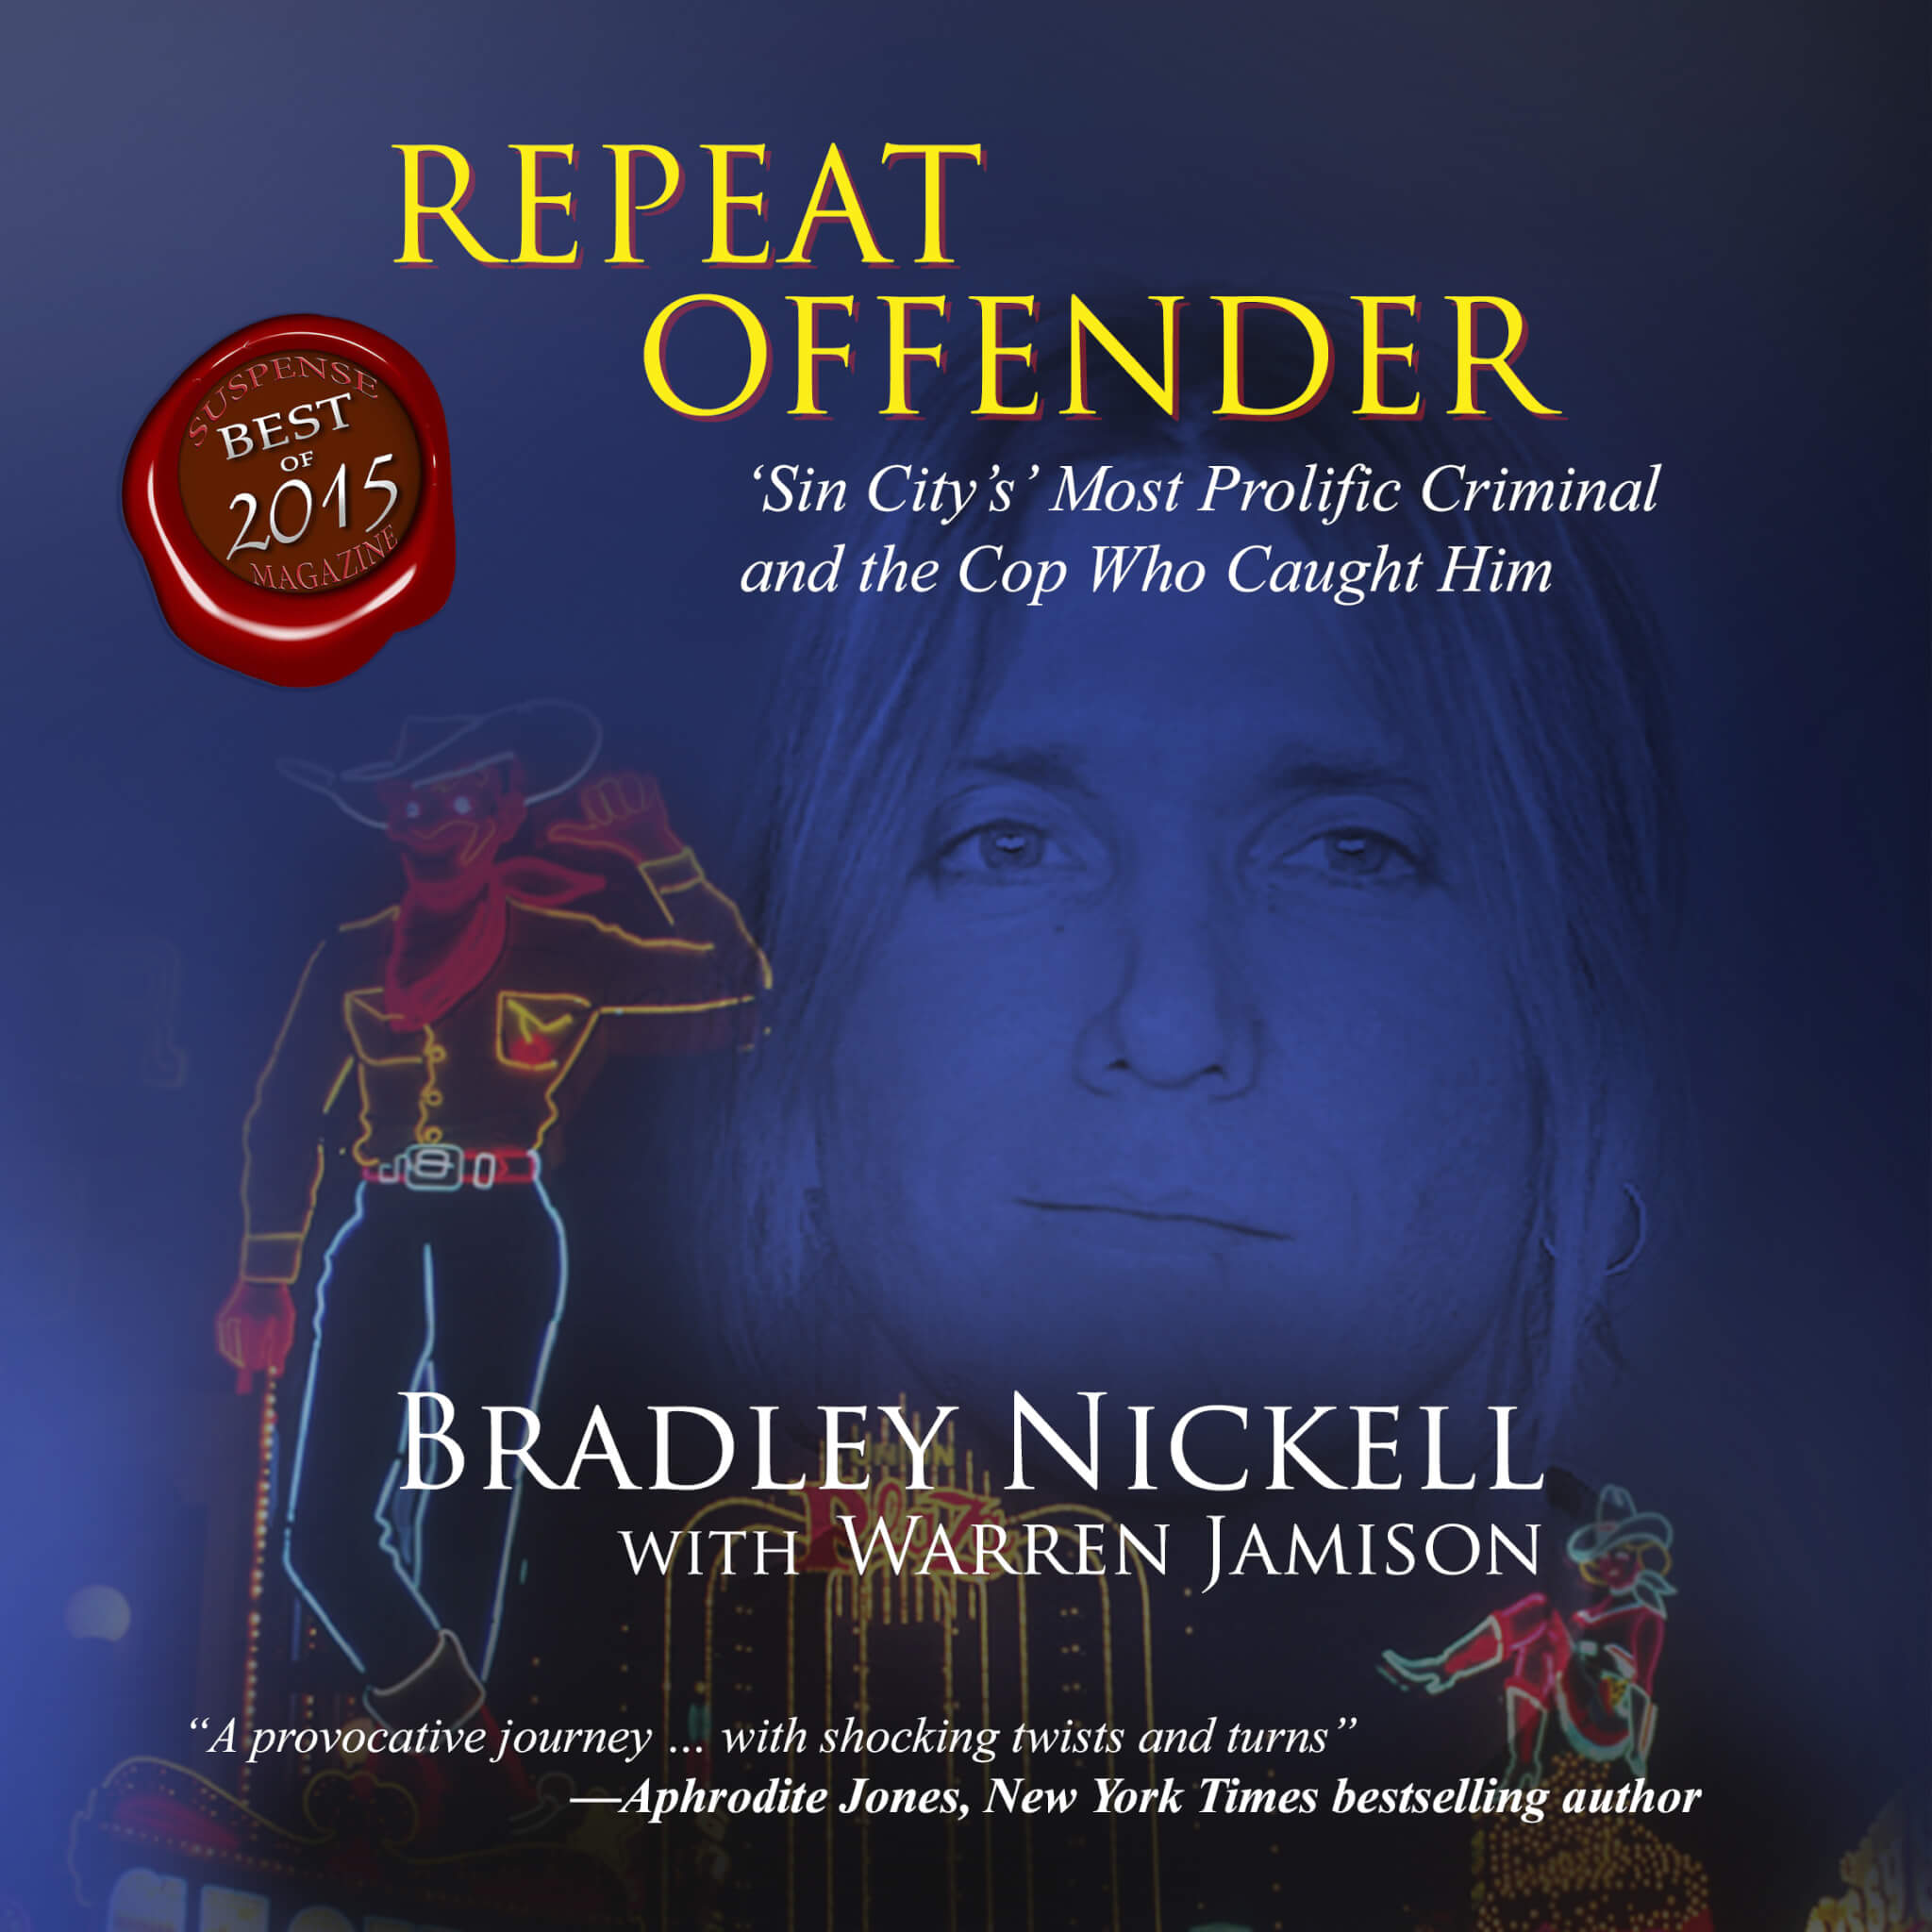 Repeat Offender: Sin City's Most Prolific Criminal and the Cop Who Caught Him by Bradley Nickell